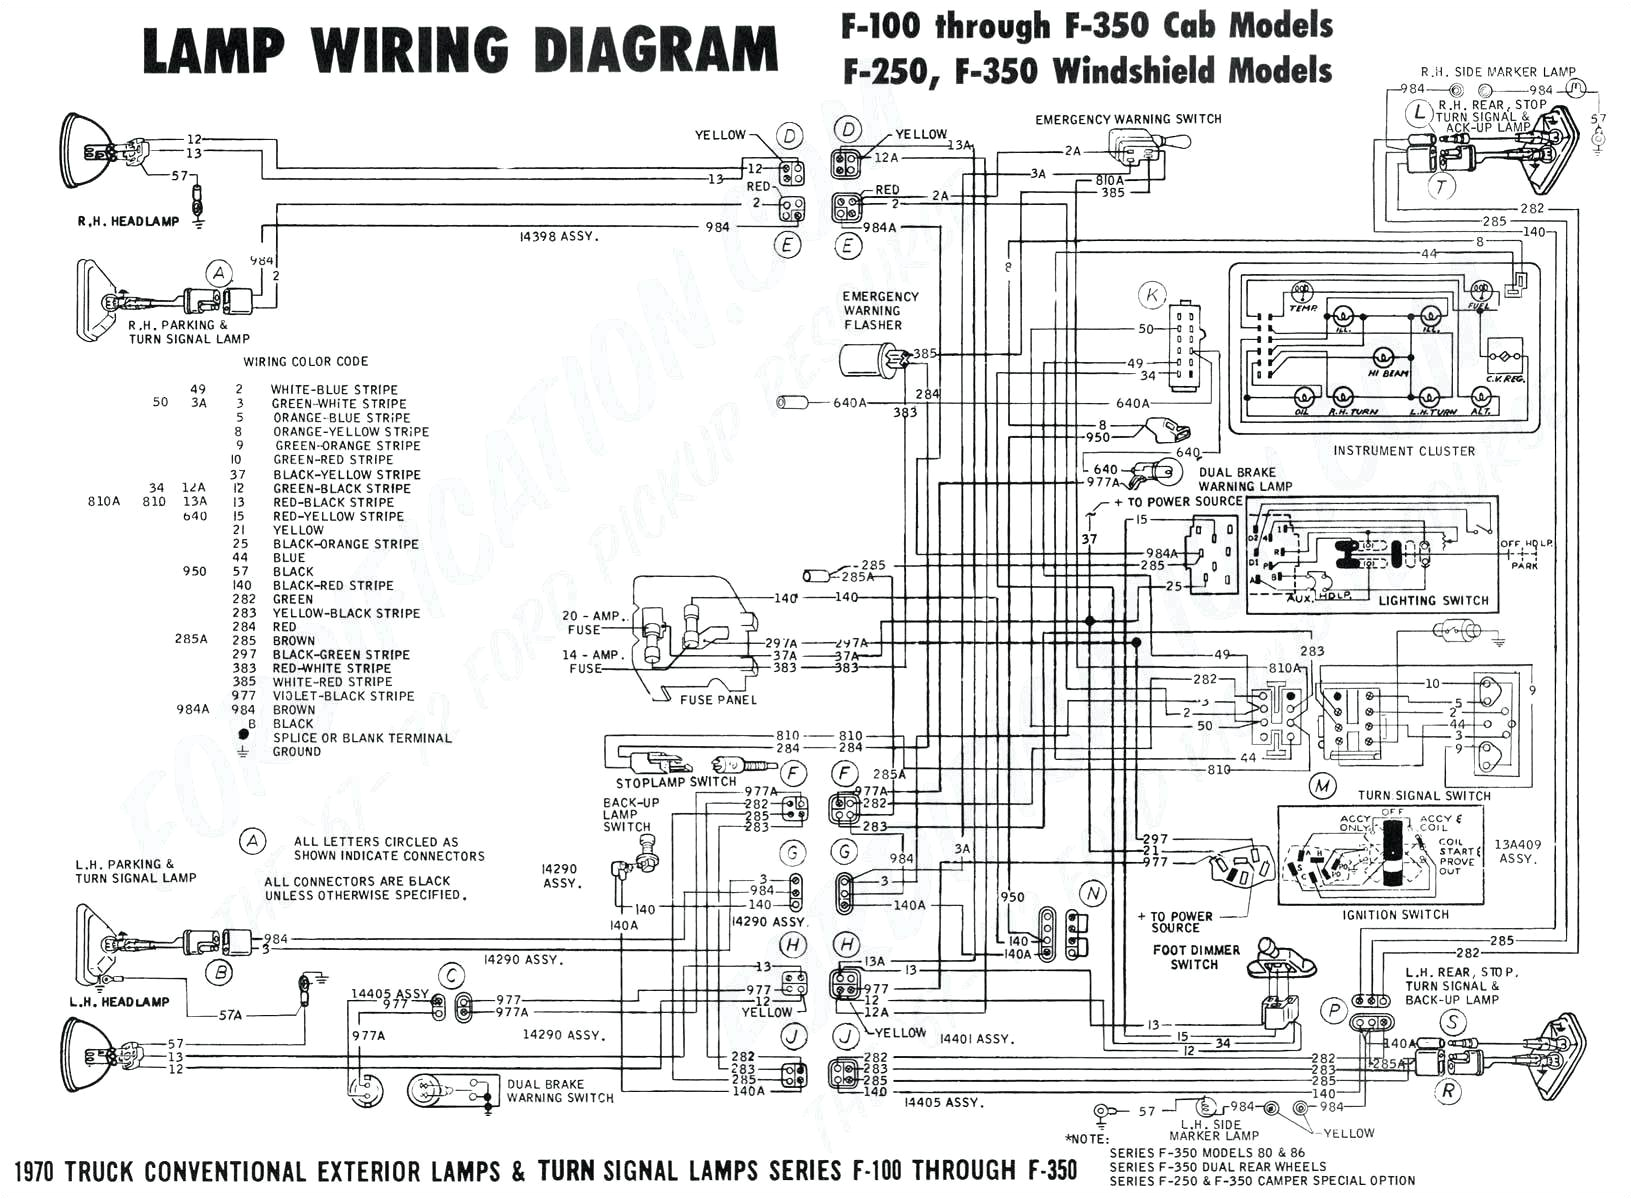 99 dodge ram wiring diagram wiring diagram database 99 ram 2500 wiring diagram 98 dodge ram